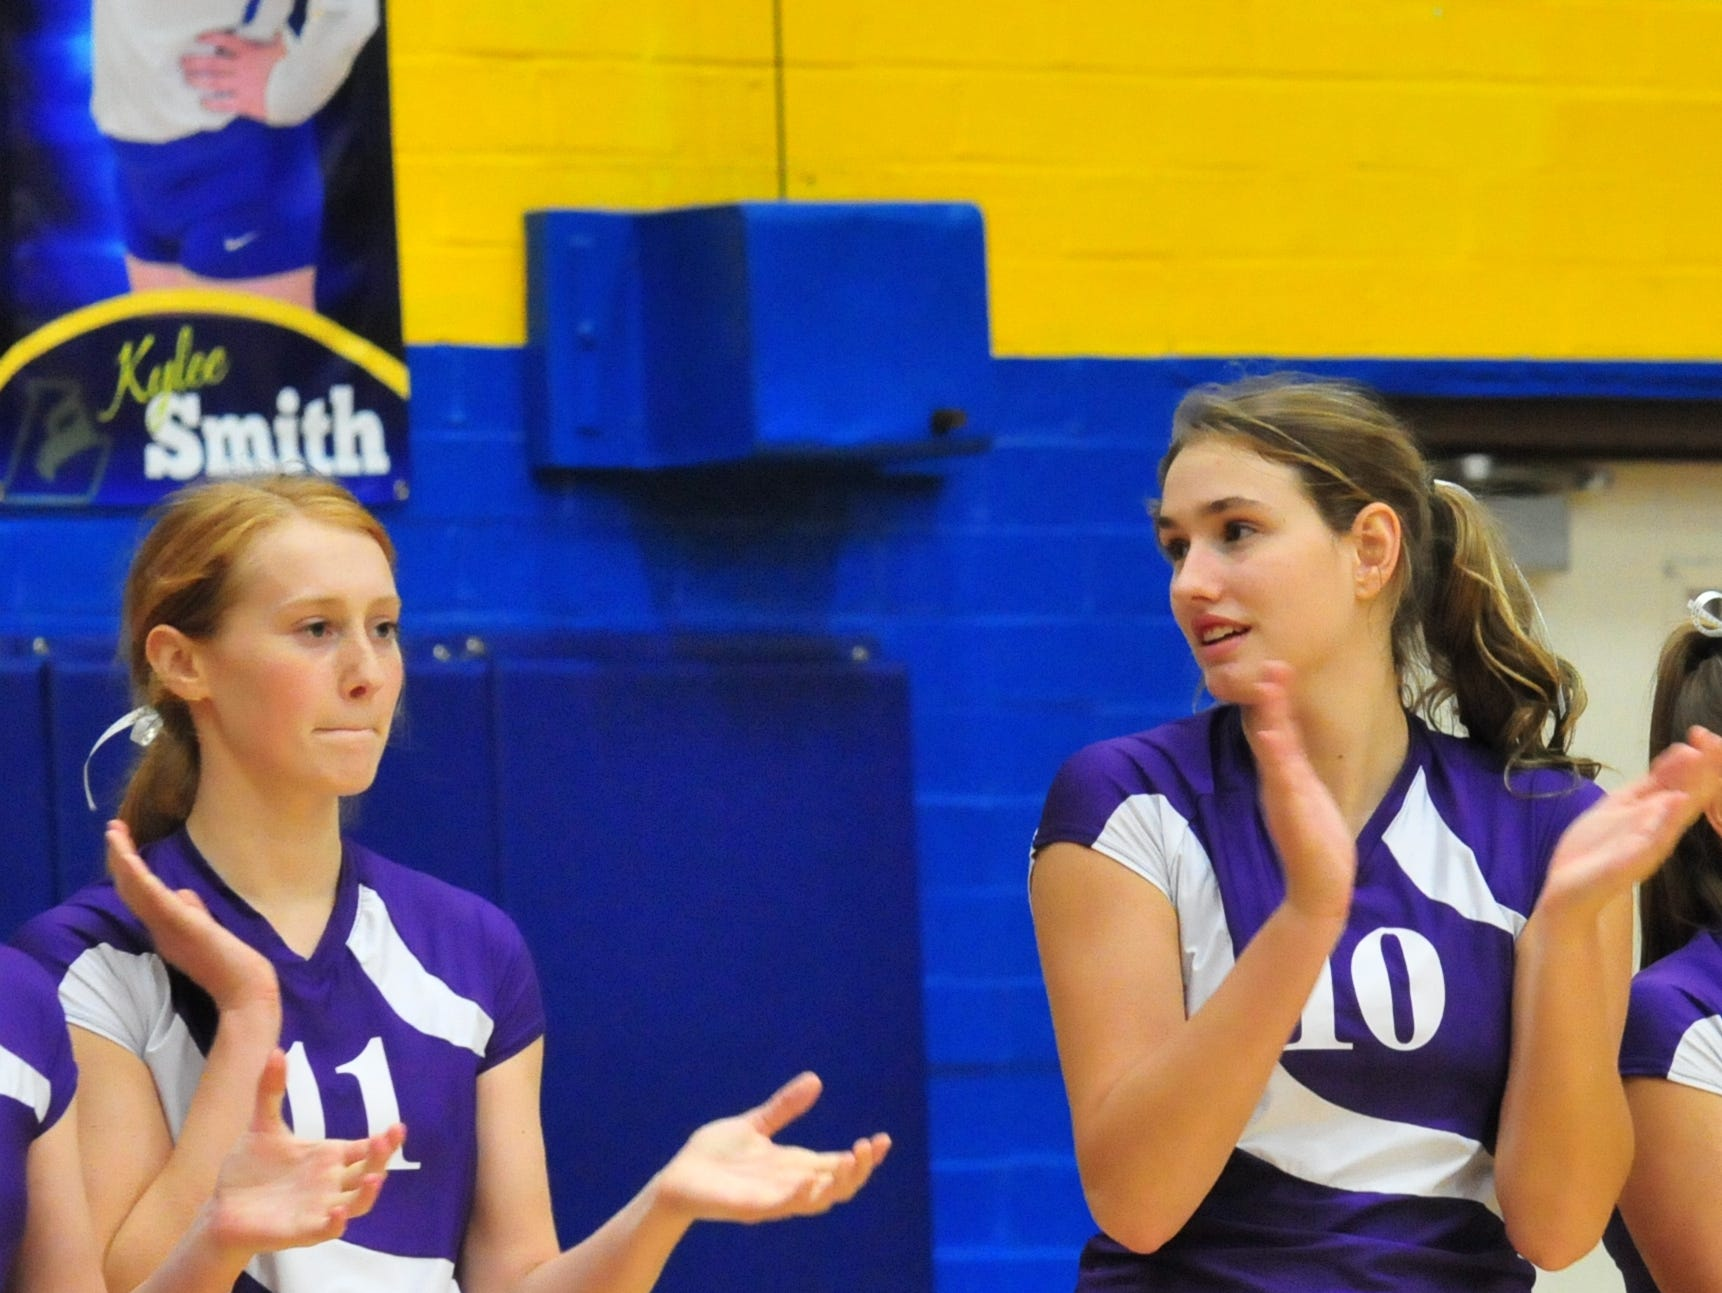 Jessica Swimm (11) and Regan Tinkle (10) of the Hagerstown volleyball team during a 3-0 win over Centerville Thursday, Oct. 11, 2018.